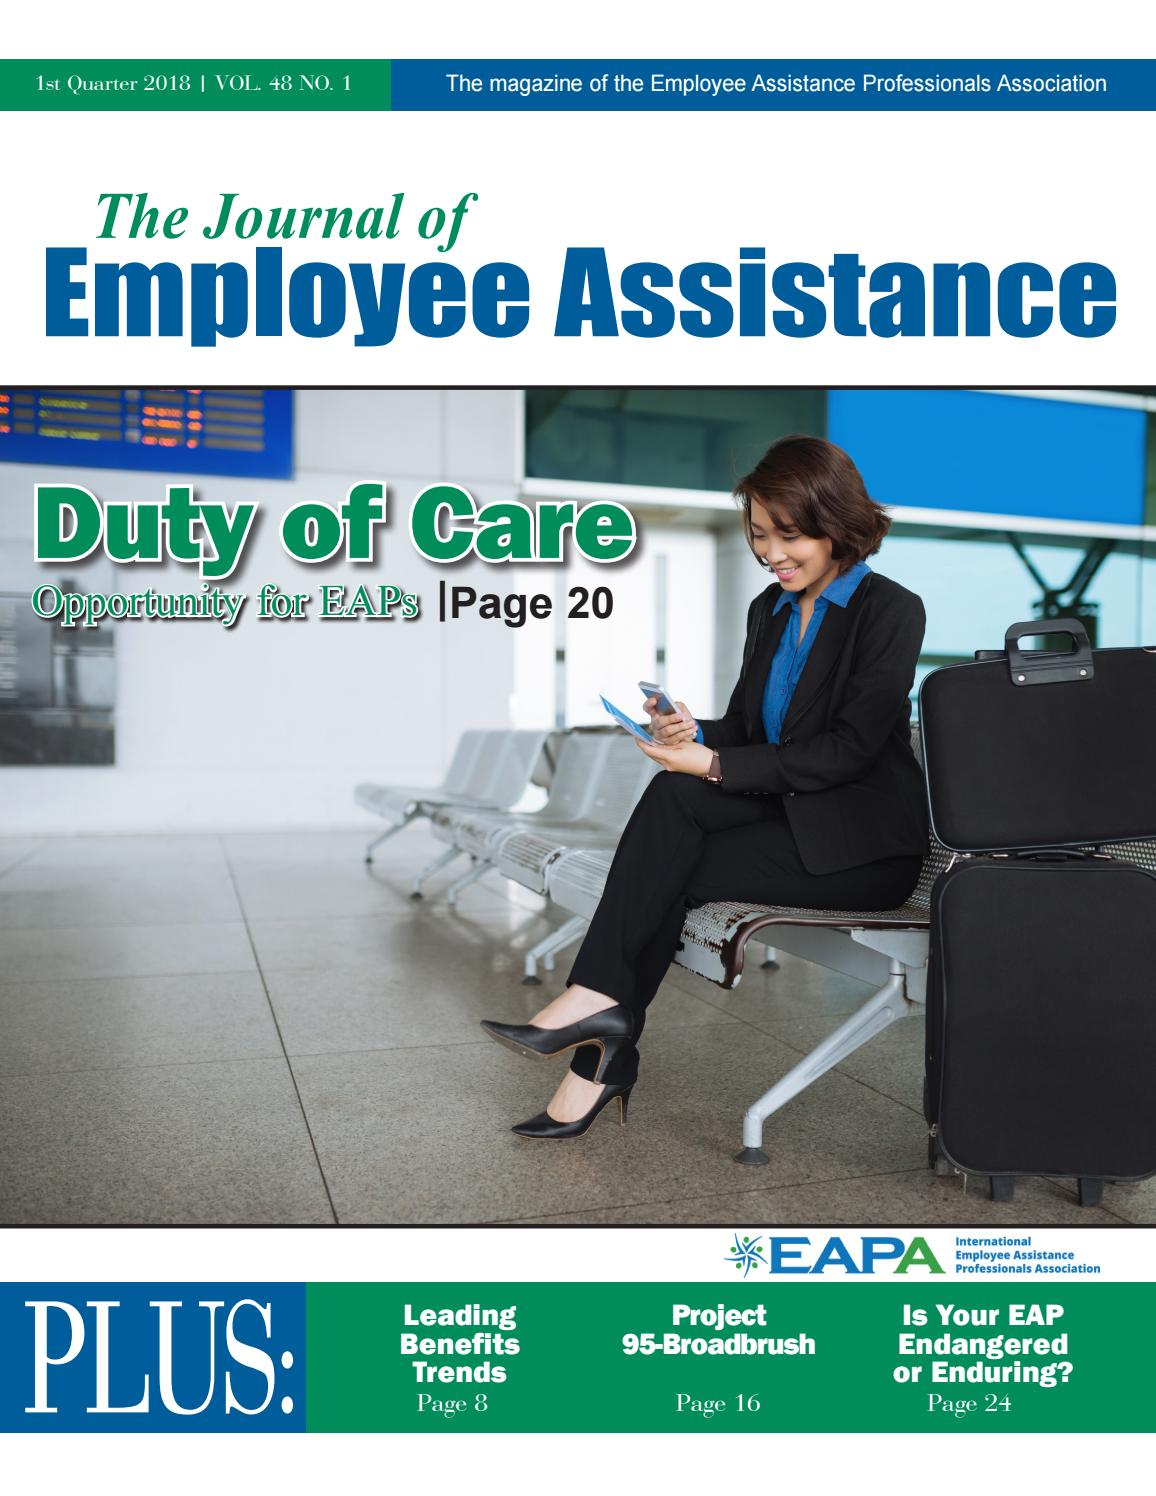 Jea vol48no1 1stqtr2018 by employee assistance professionals jea vol48no1 1stqtr2018 by employee assistance professionals association issuu xflitez Image collections